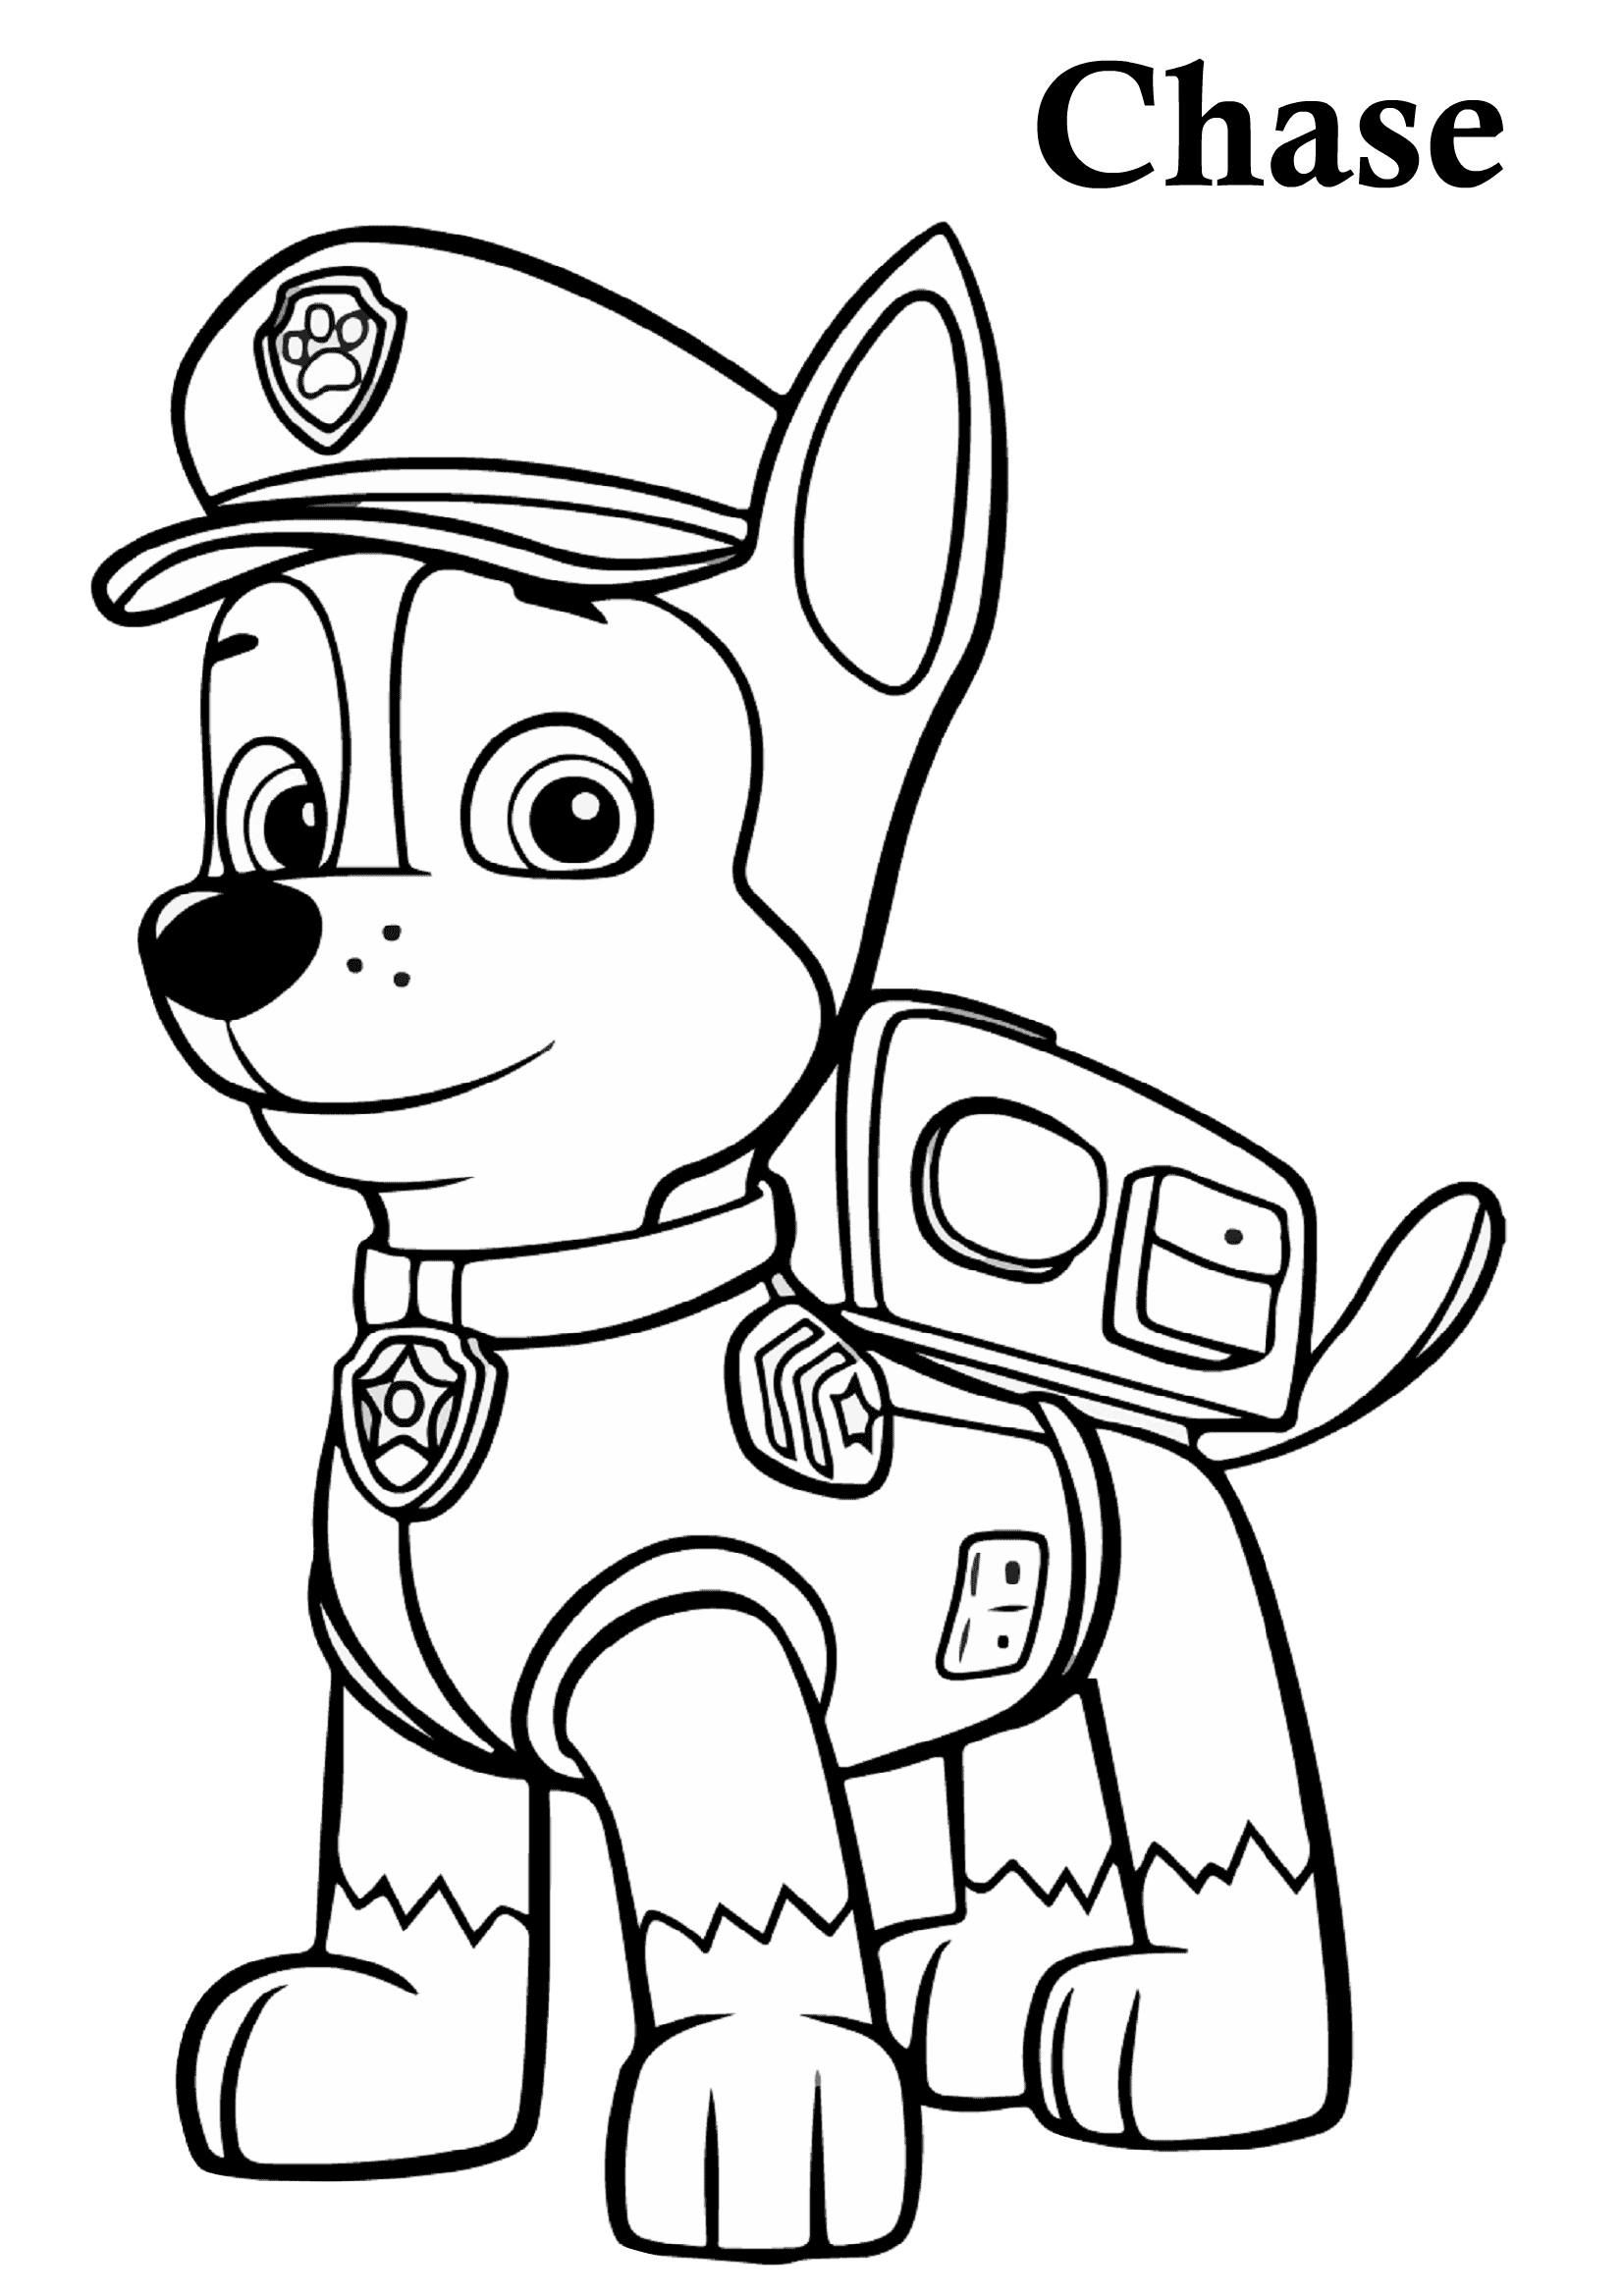 paw patrol free coloring pages printable 32 paw patrol coloring pages printable pdf print color pages printable paw patrol coloring free